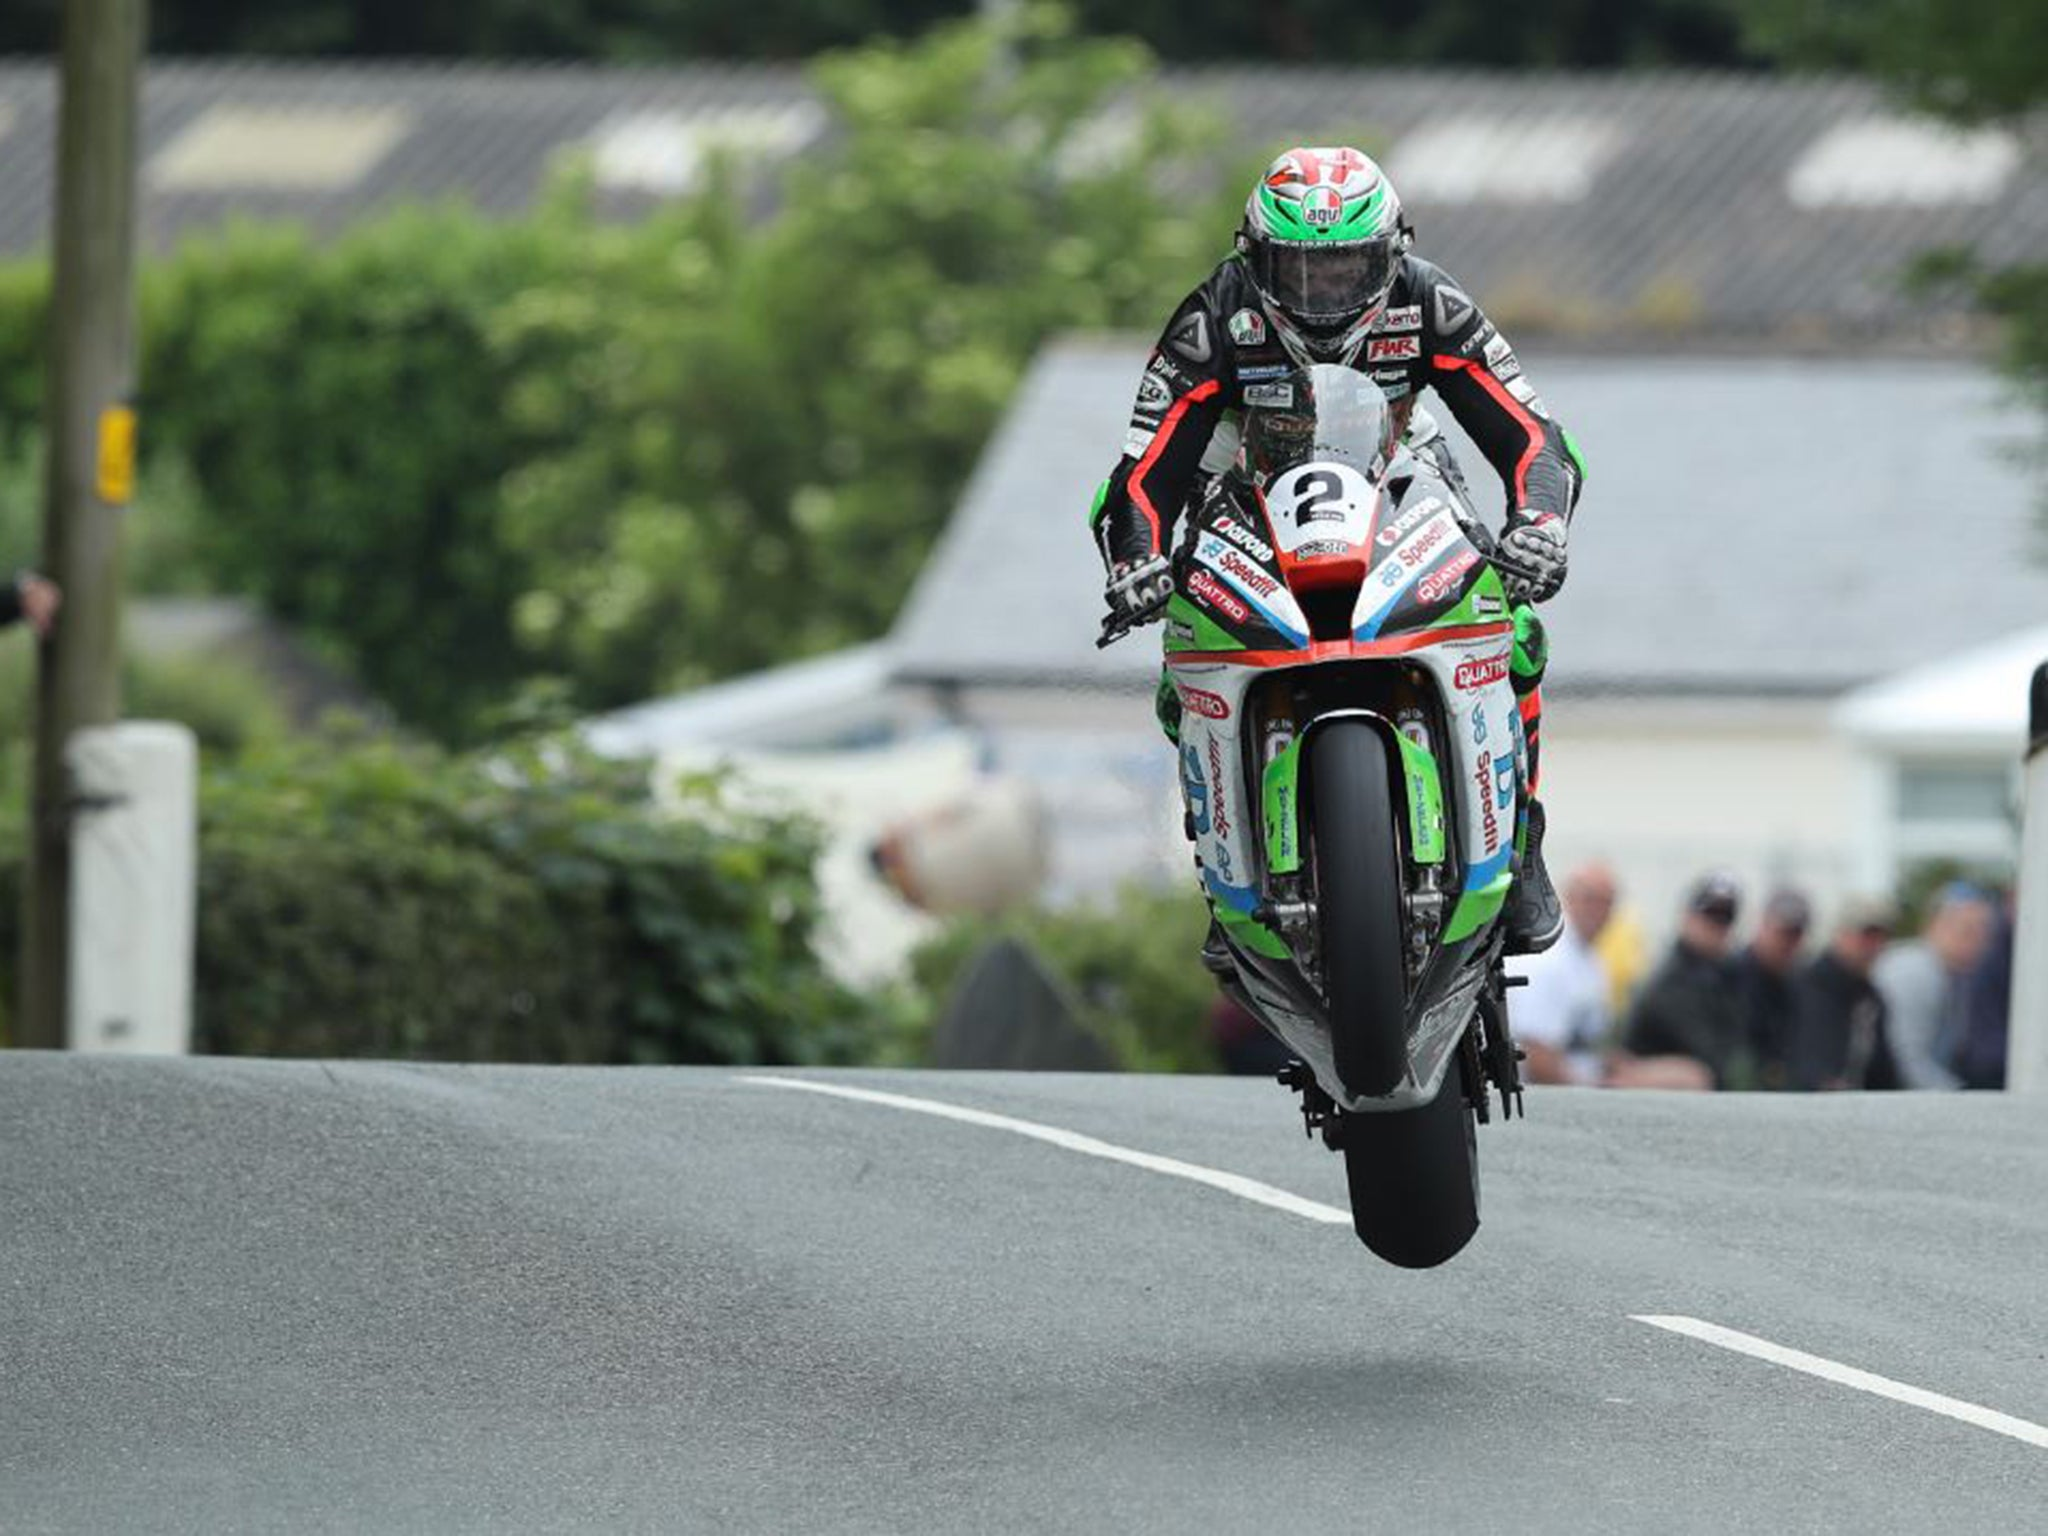 Isle of Man TT 2018 results: Michael Dunlop bags second win